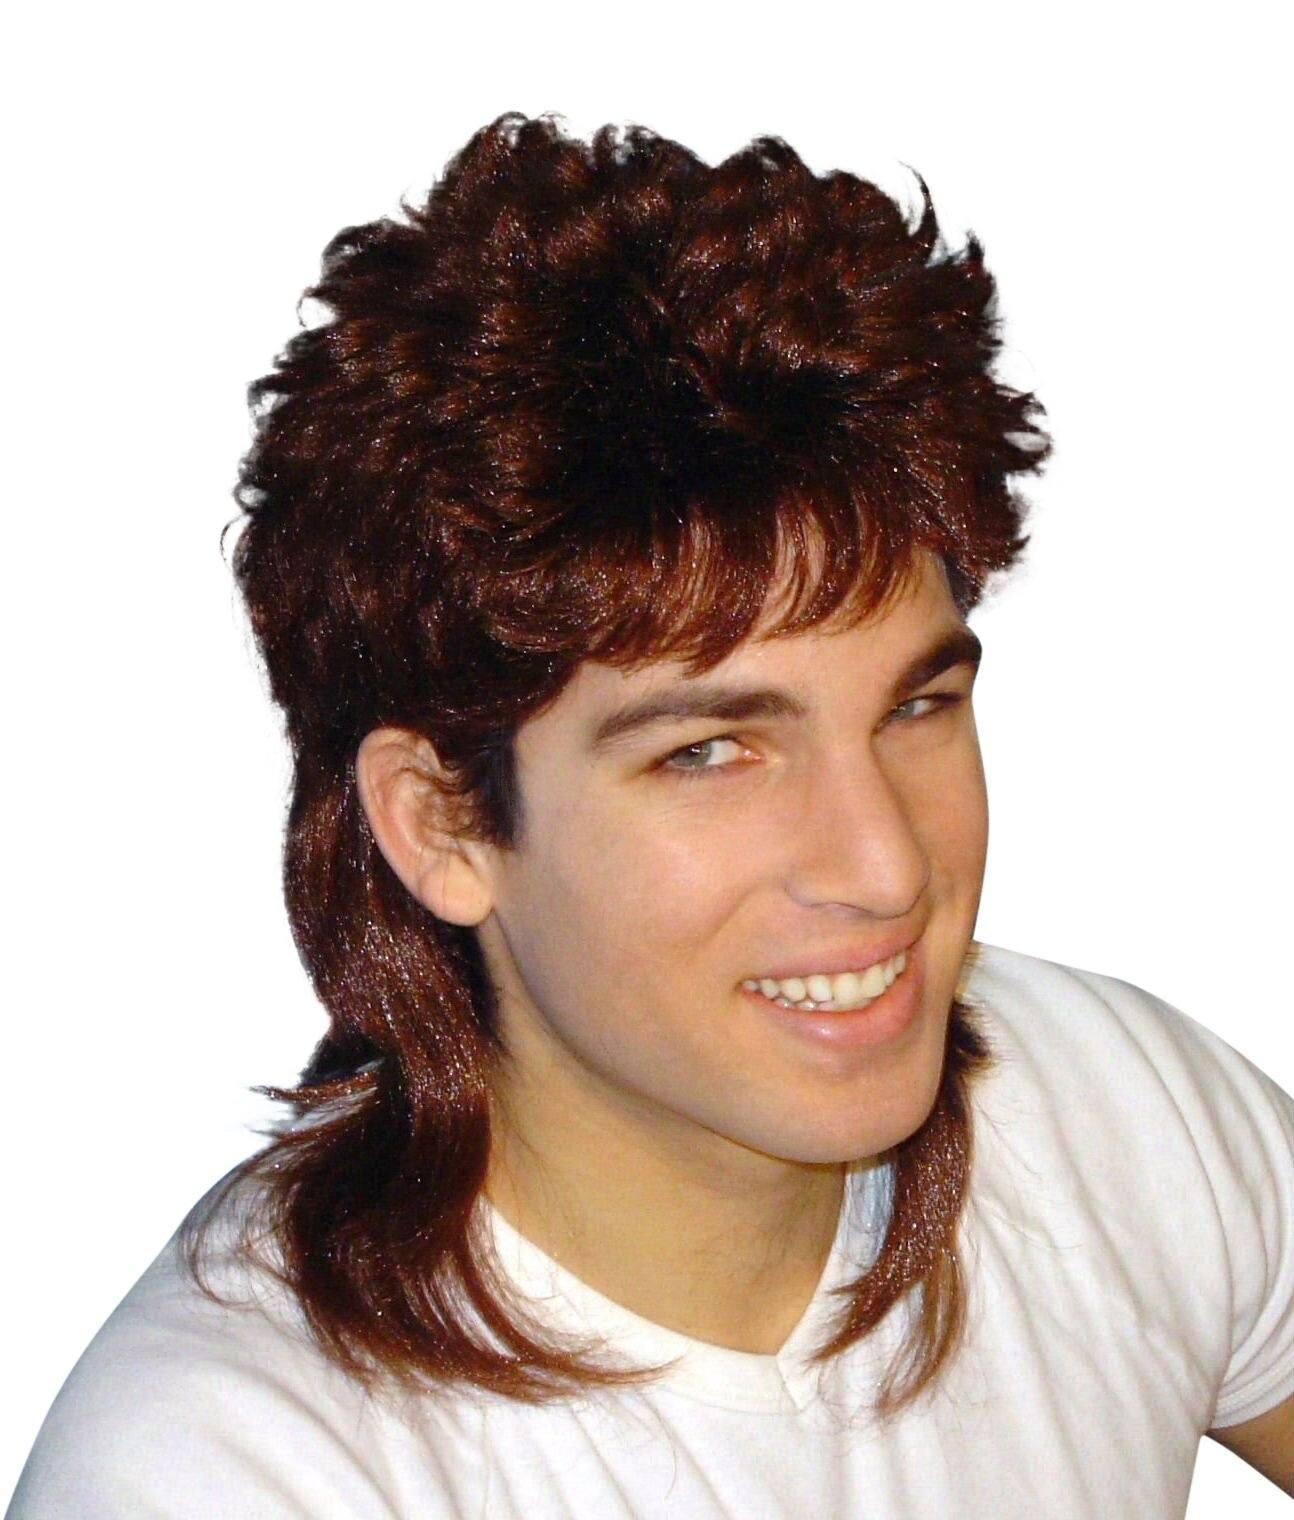 Brown Mullet Wig Fancy Dress 70s 80s Costume Party Bogan Rock Hair ...